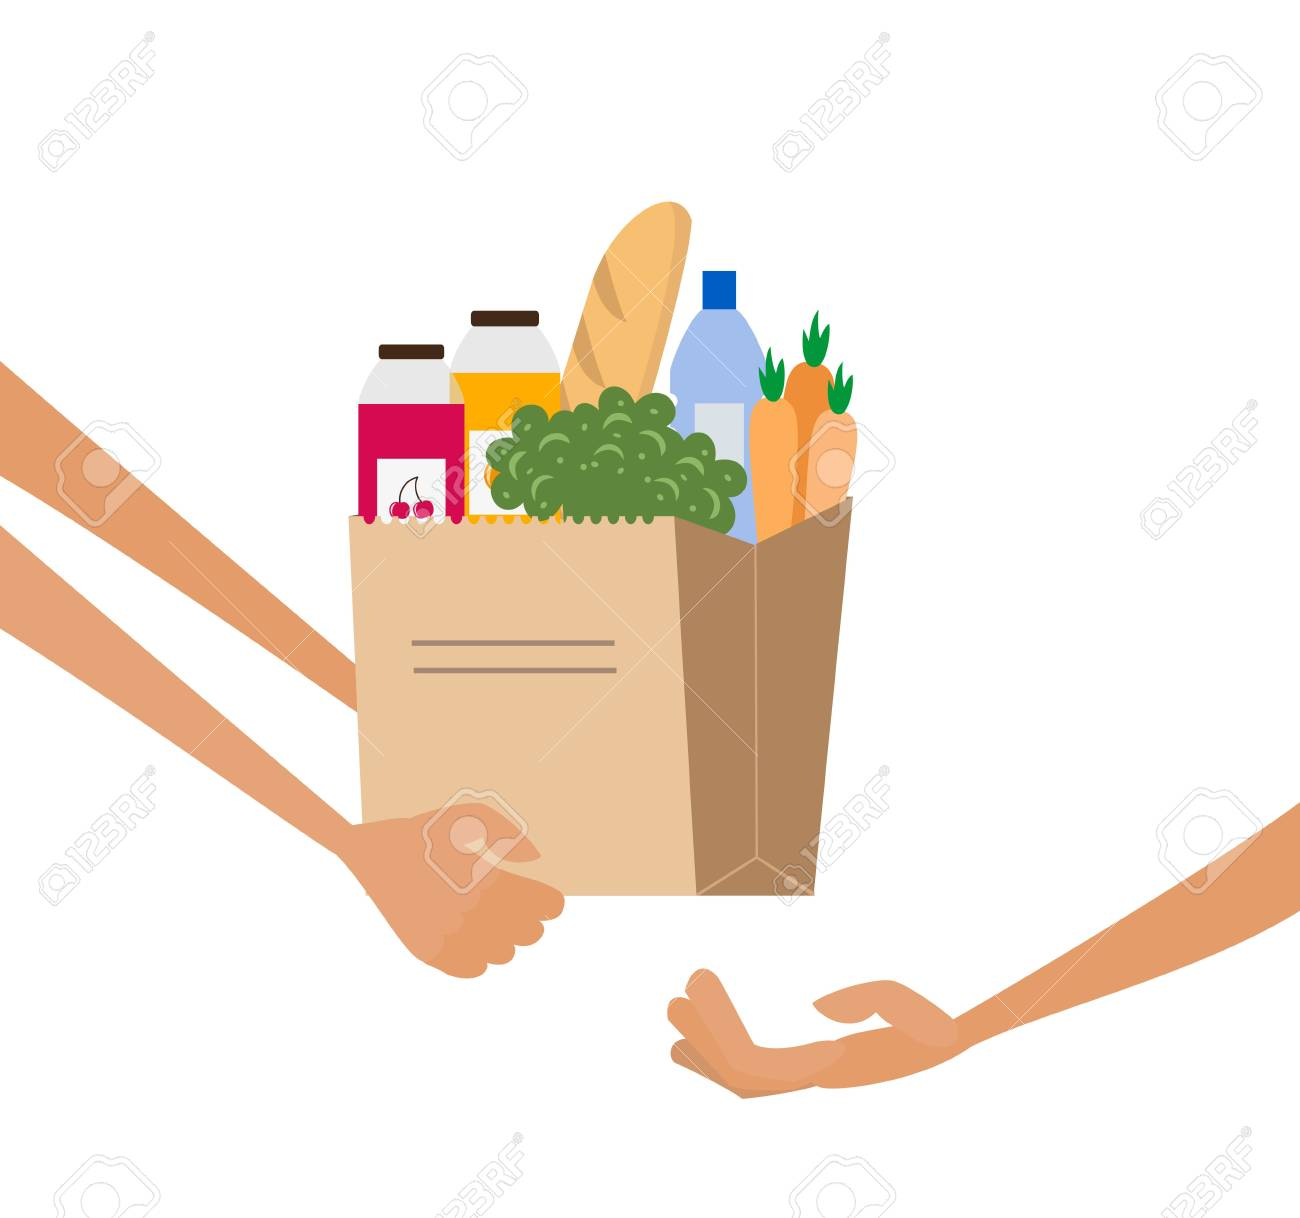 Grocery delivery service concept with paper bag full of food. Vector illustration. - 98521512